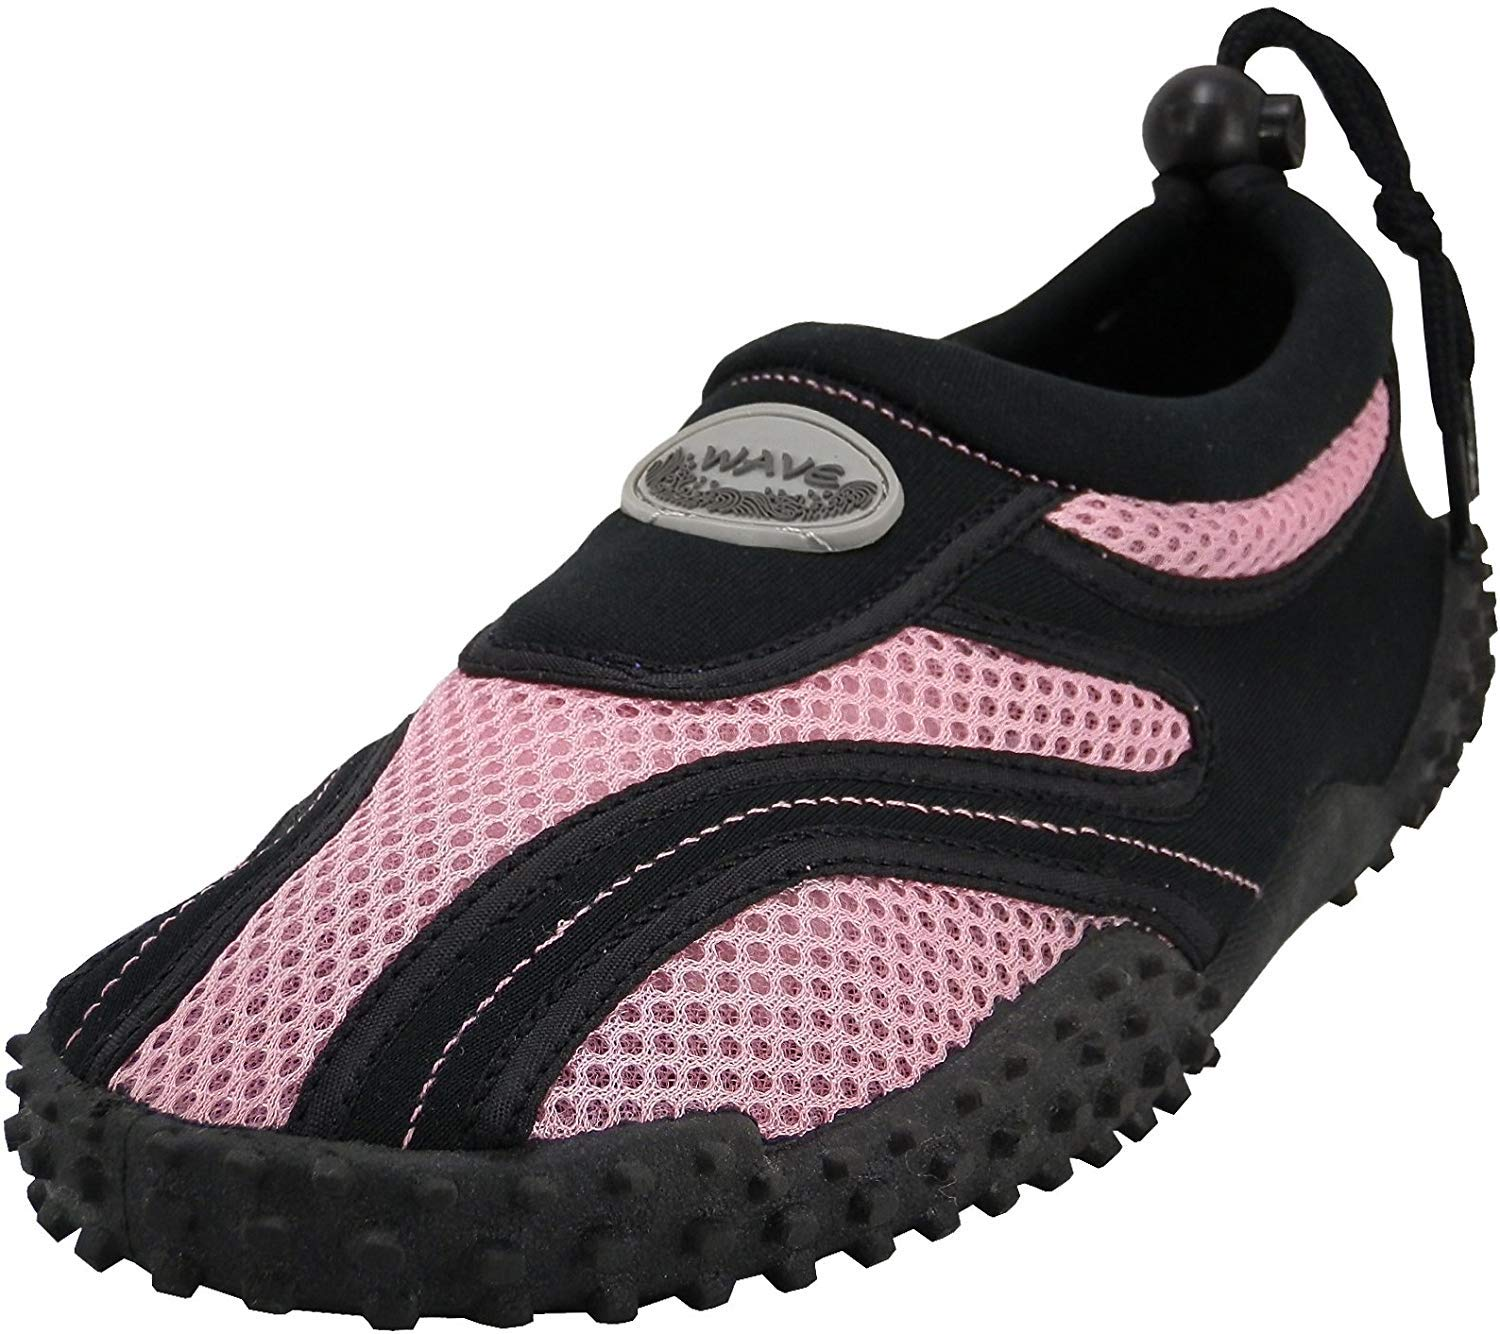 Sunville Toddlers Athletic Water Shoes Aqua Socks